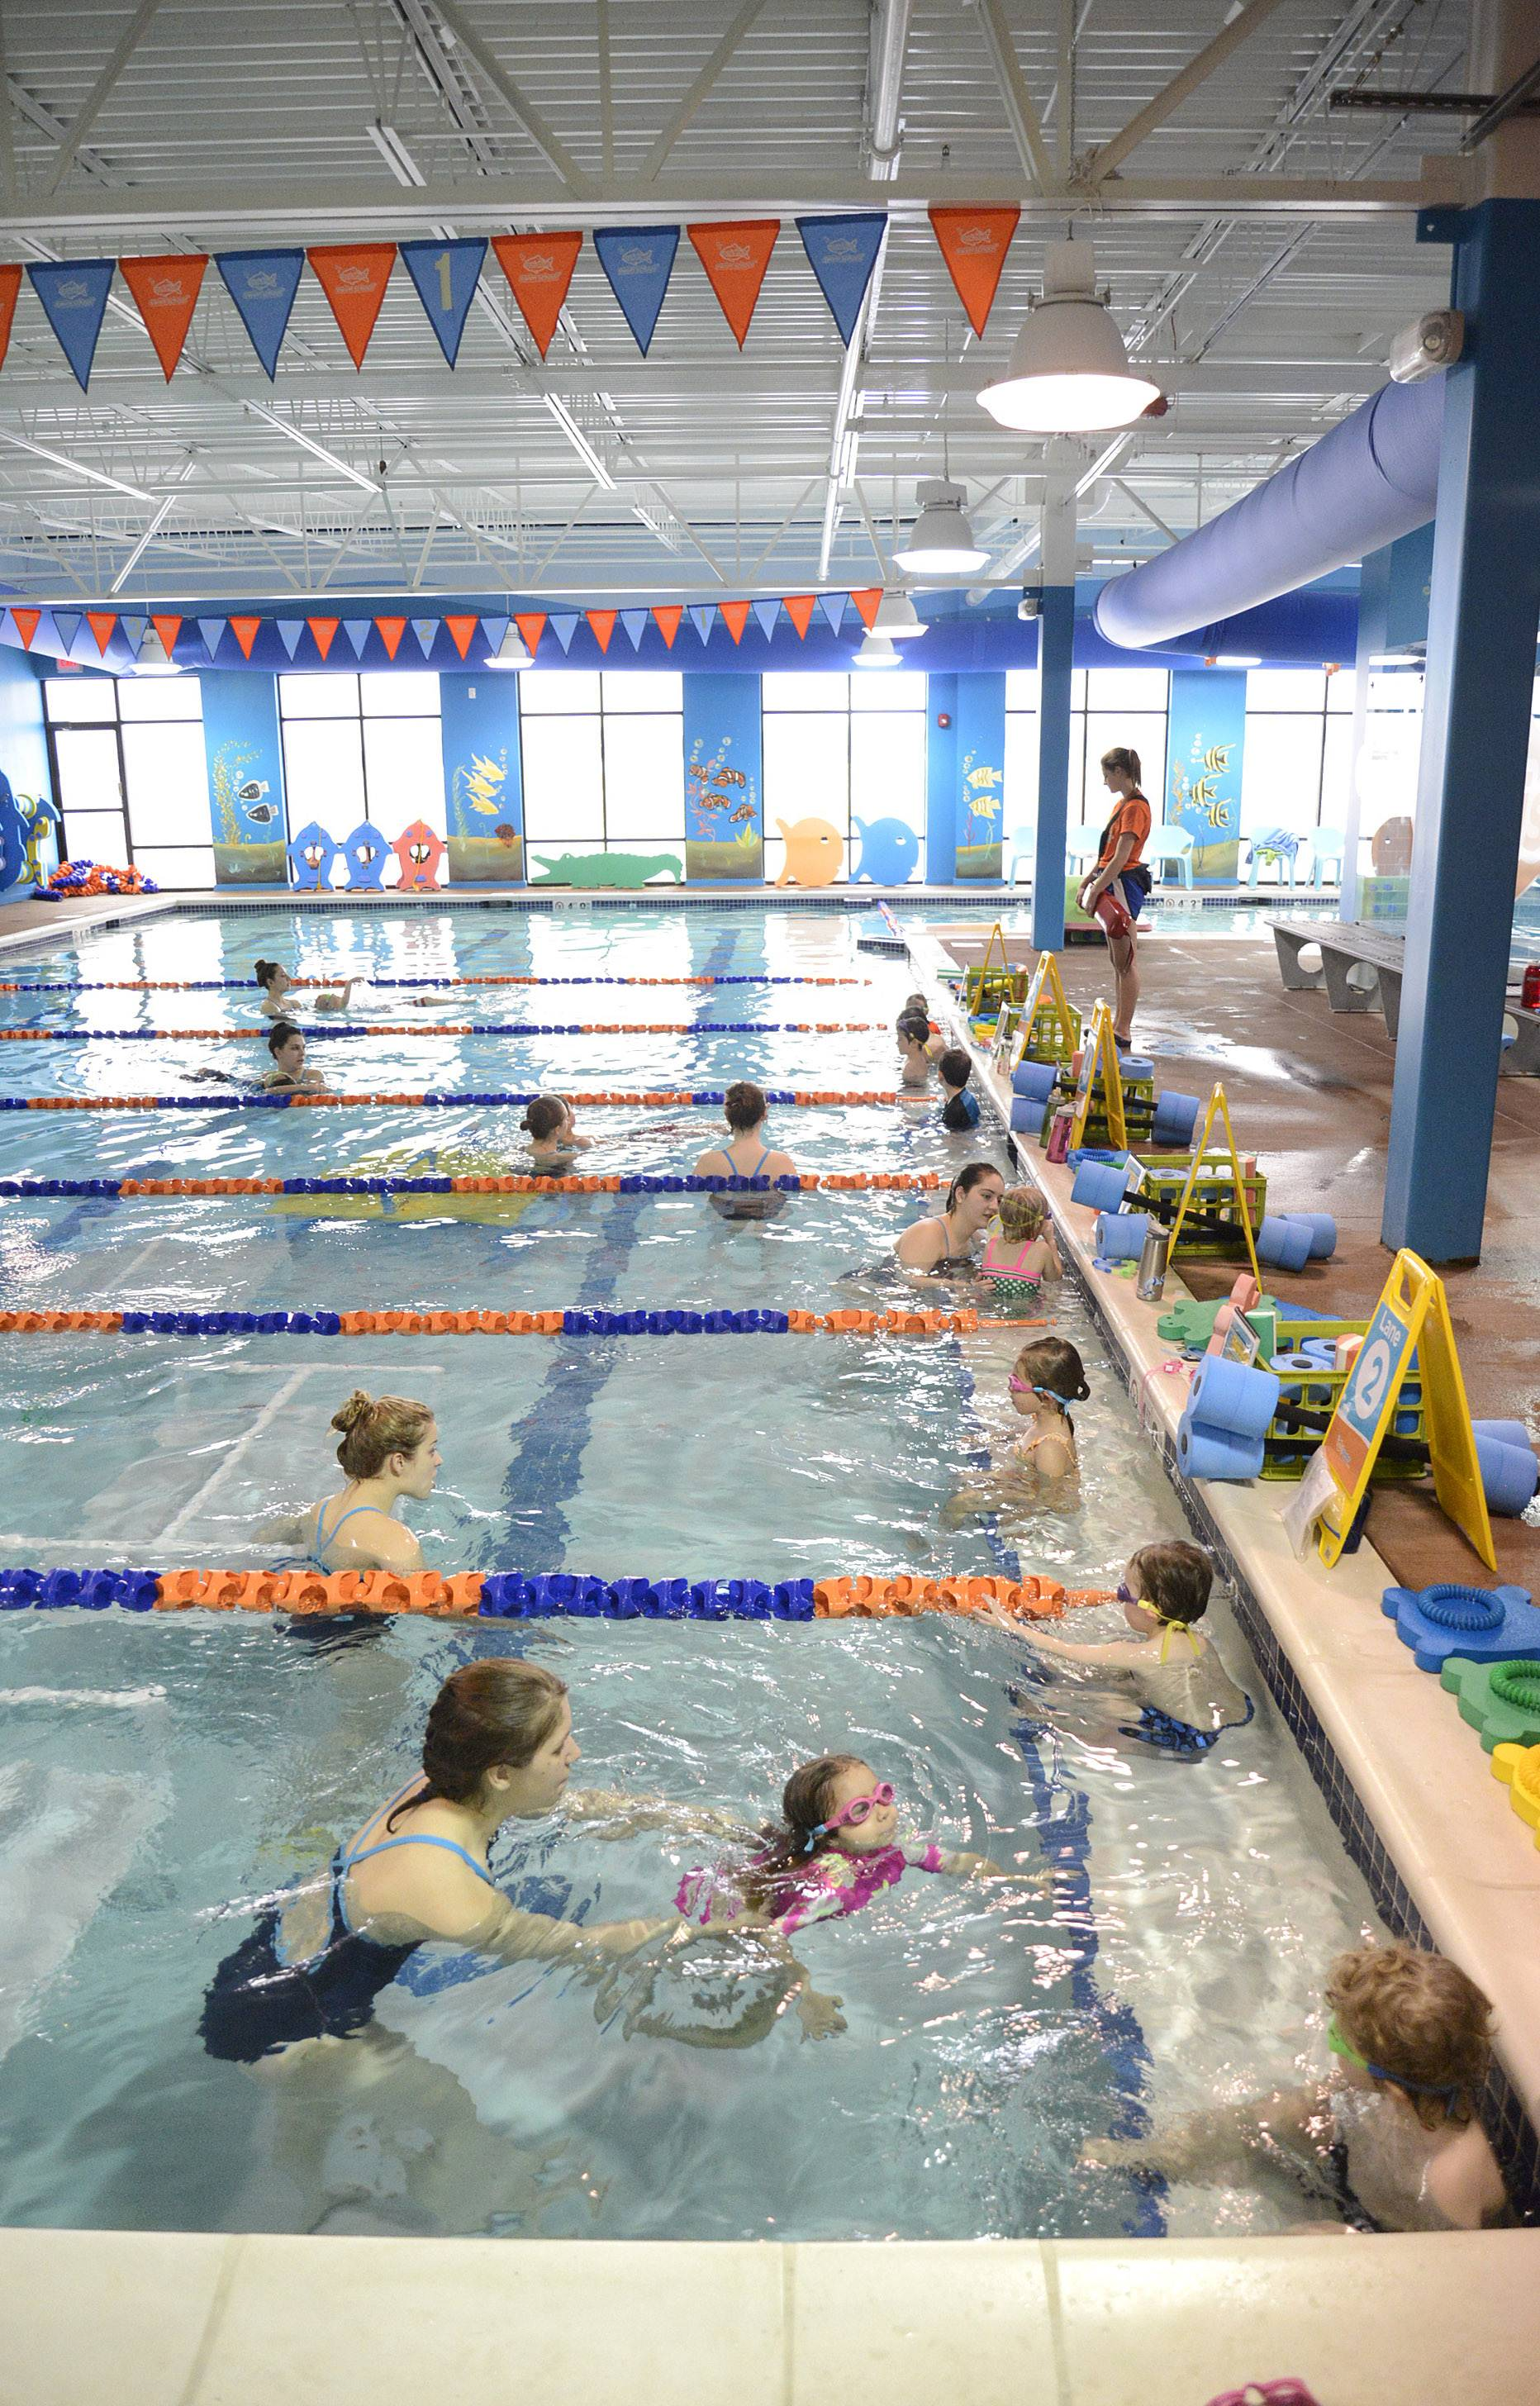 Swim classes are held Saturday mornings at Goldfish Swim School in St. Charles.